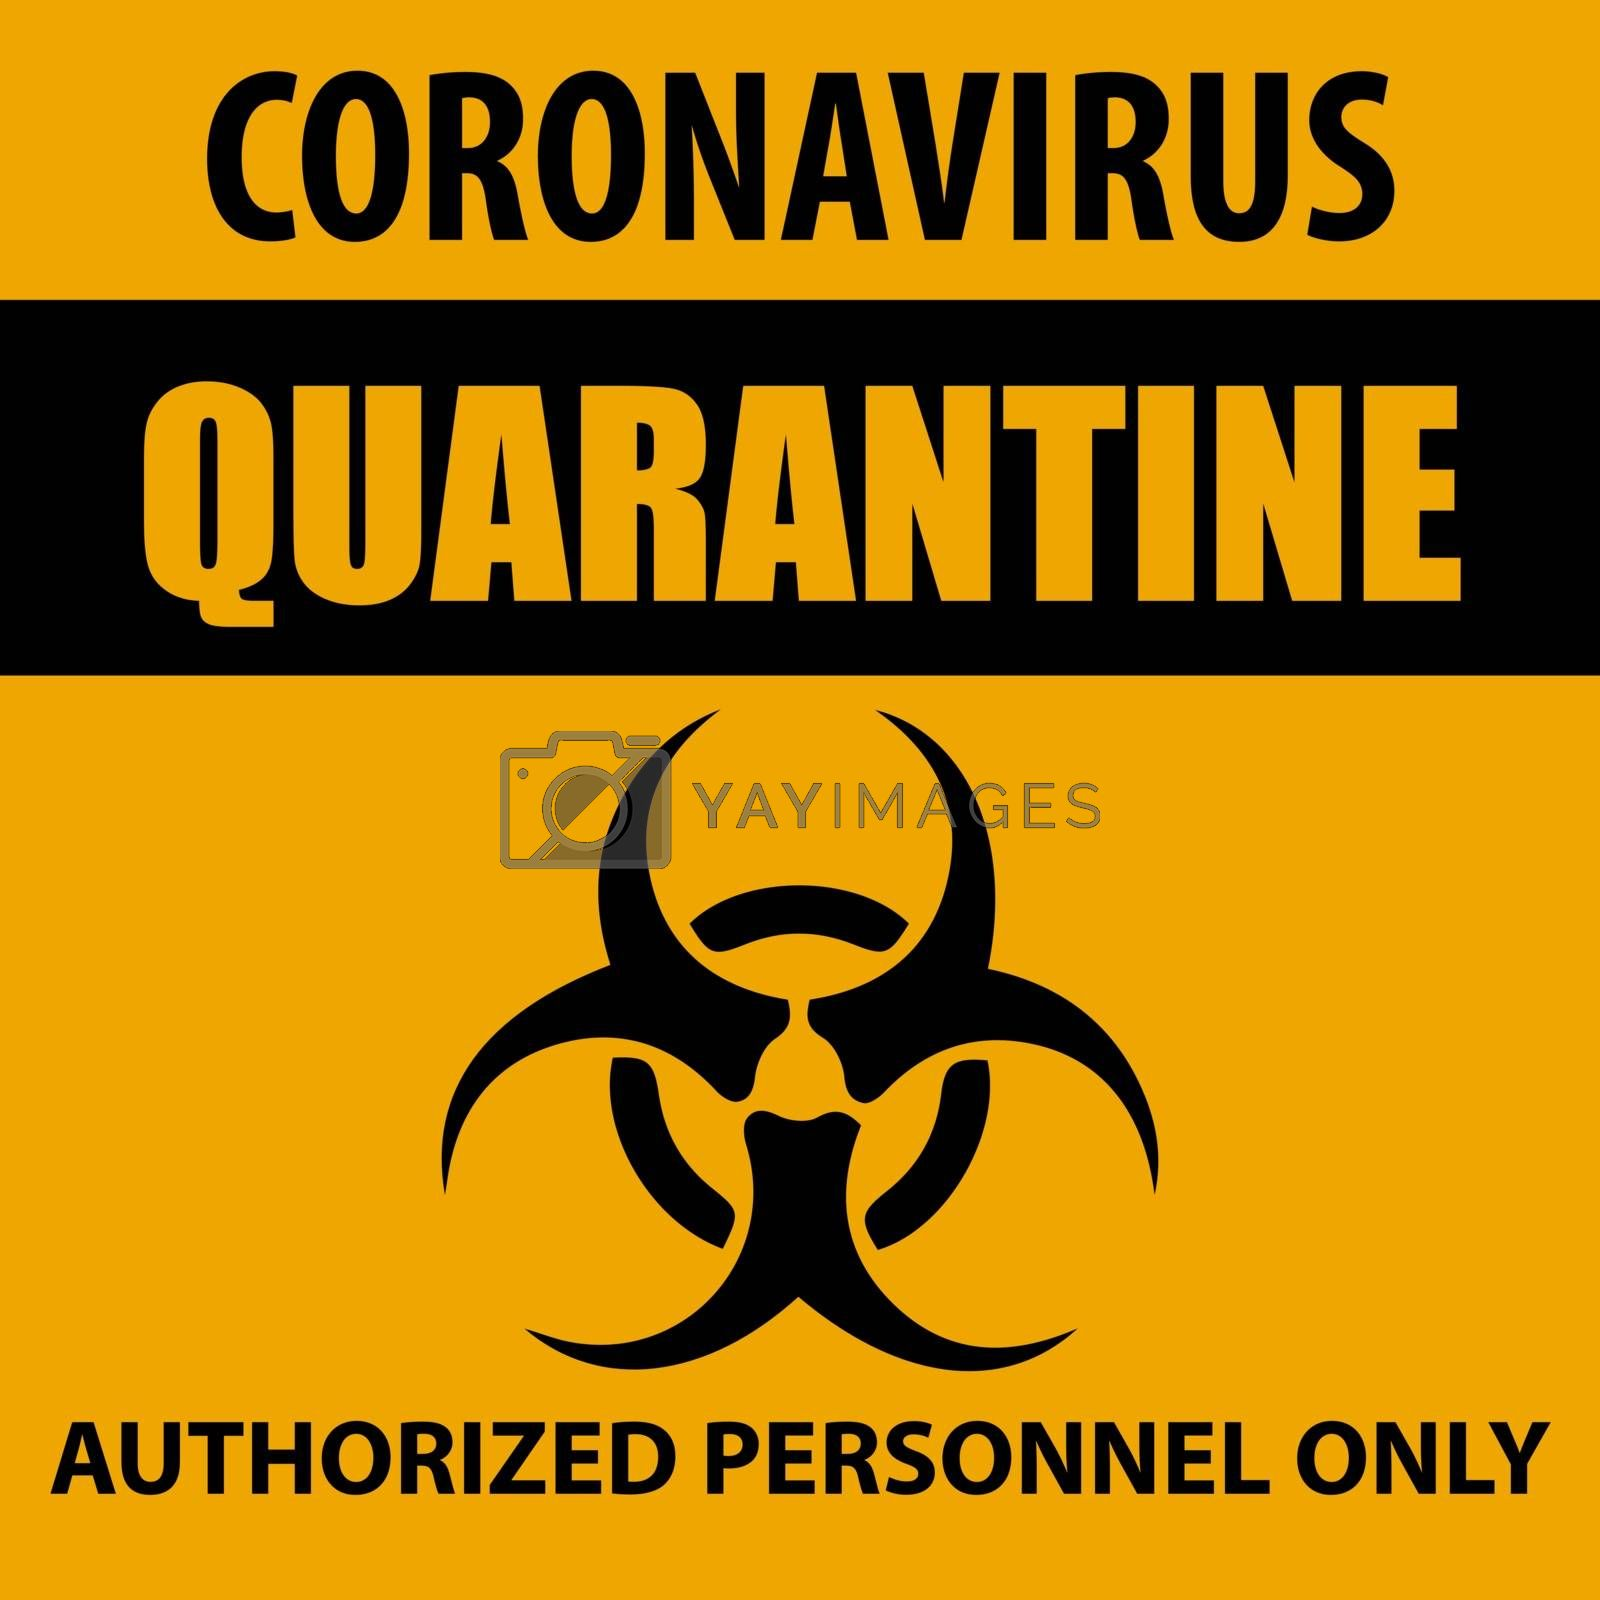 Coronavirus quarantine sign. Information warning sign about quarantine measures in public places. Restriction and caution COVID-19. Vector used for web, print, banner, flyer